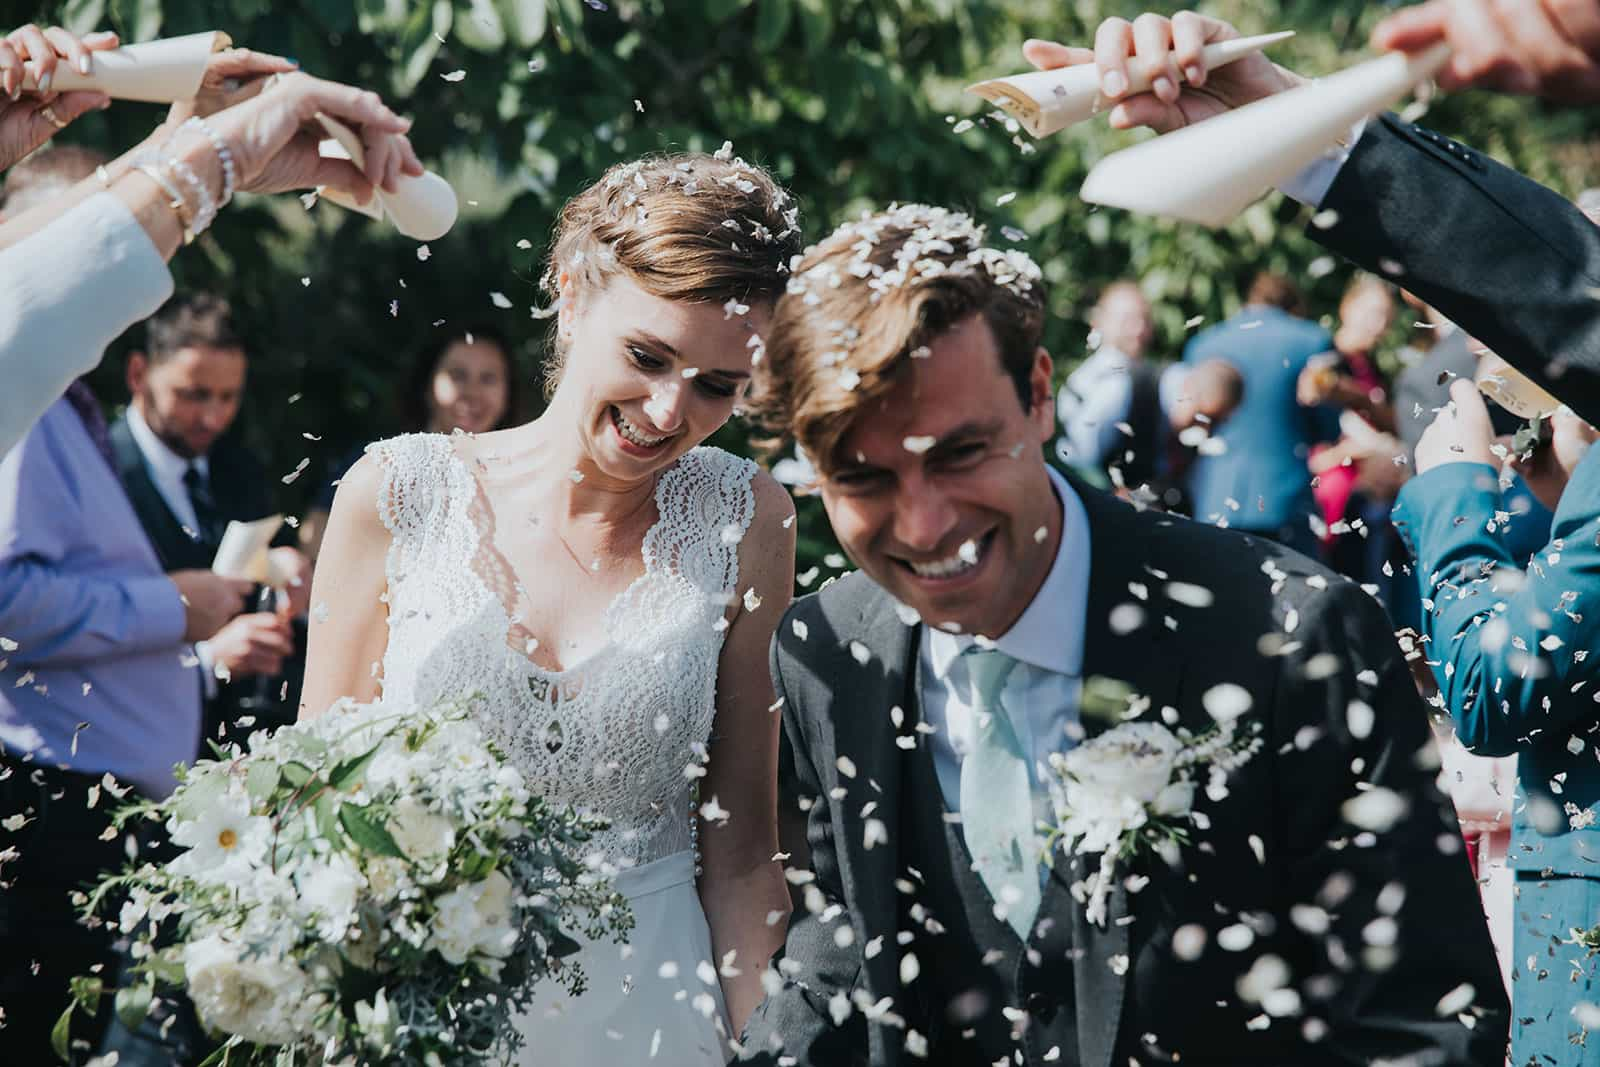 A photograph of newly weds and confetti being thrown at their tropical garden wedding